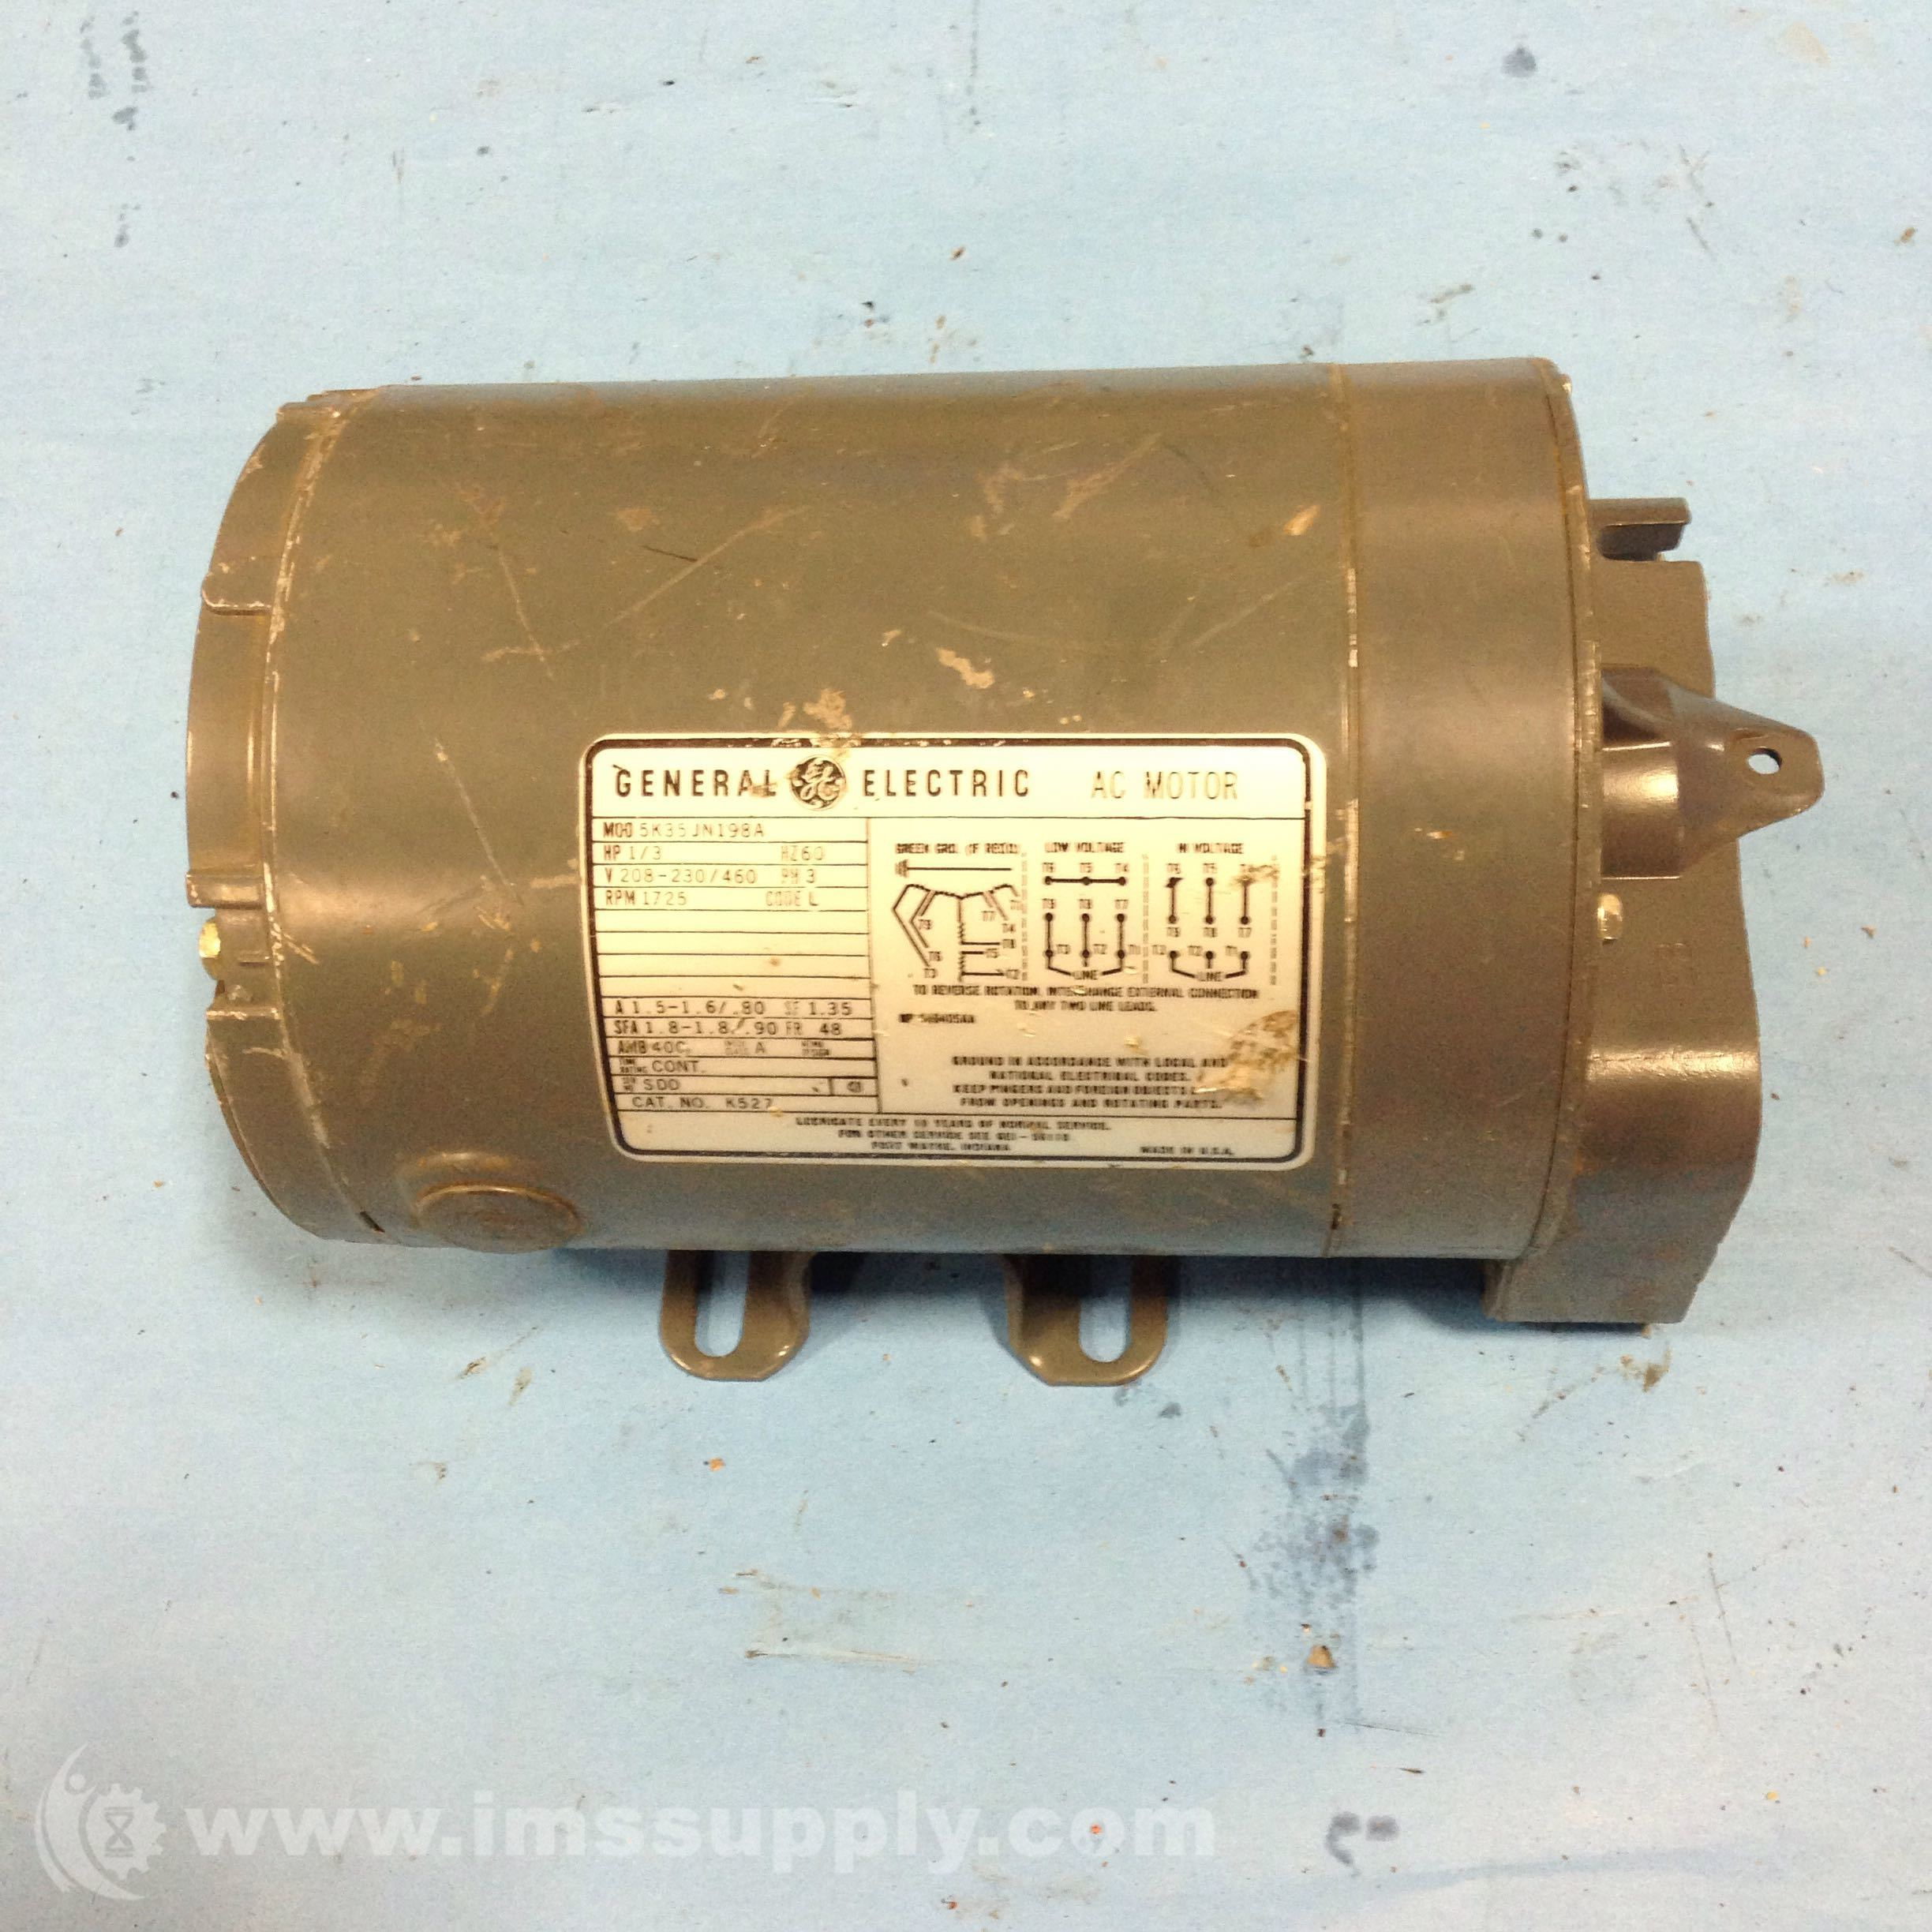 General electric 5k35jn198a motor ims supply for Ge electric motors catalog